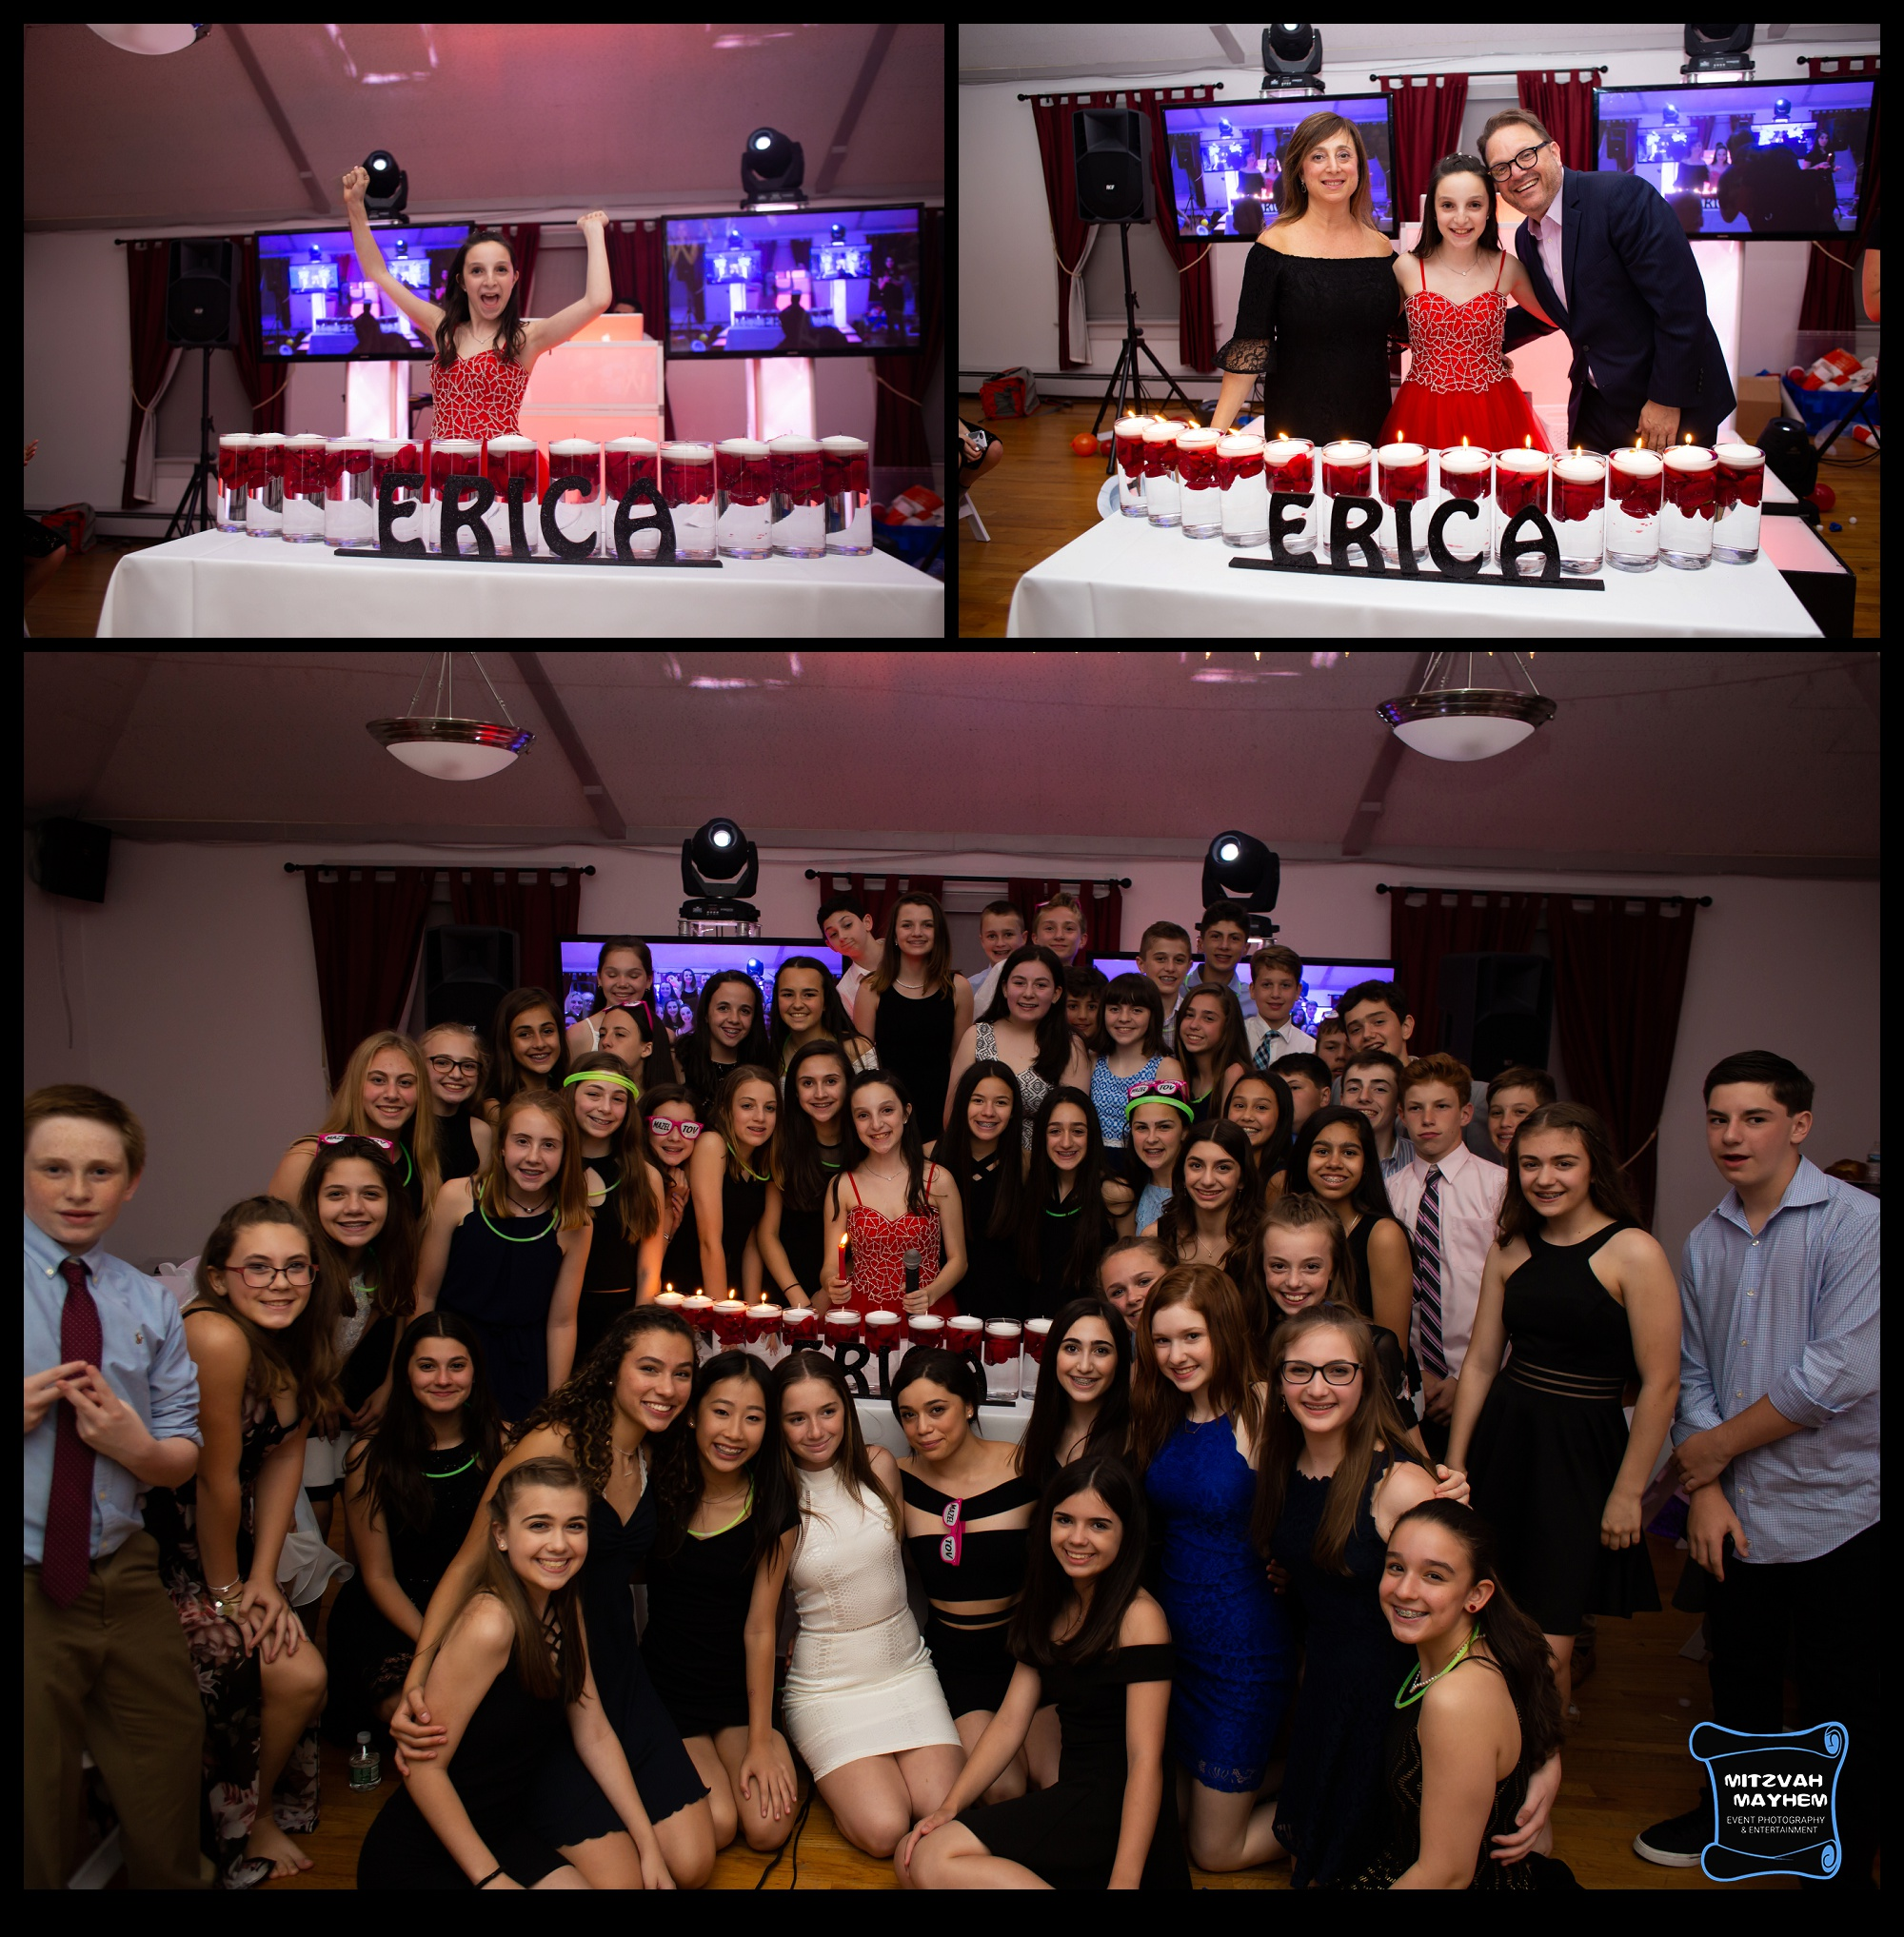 nj-bat-mitzvah-photography-7536.JPG